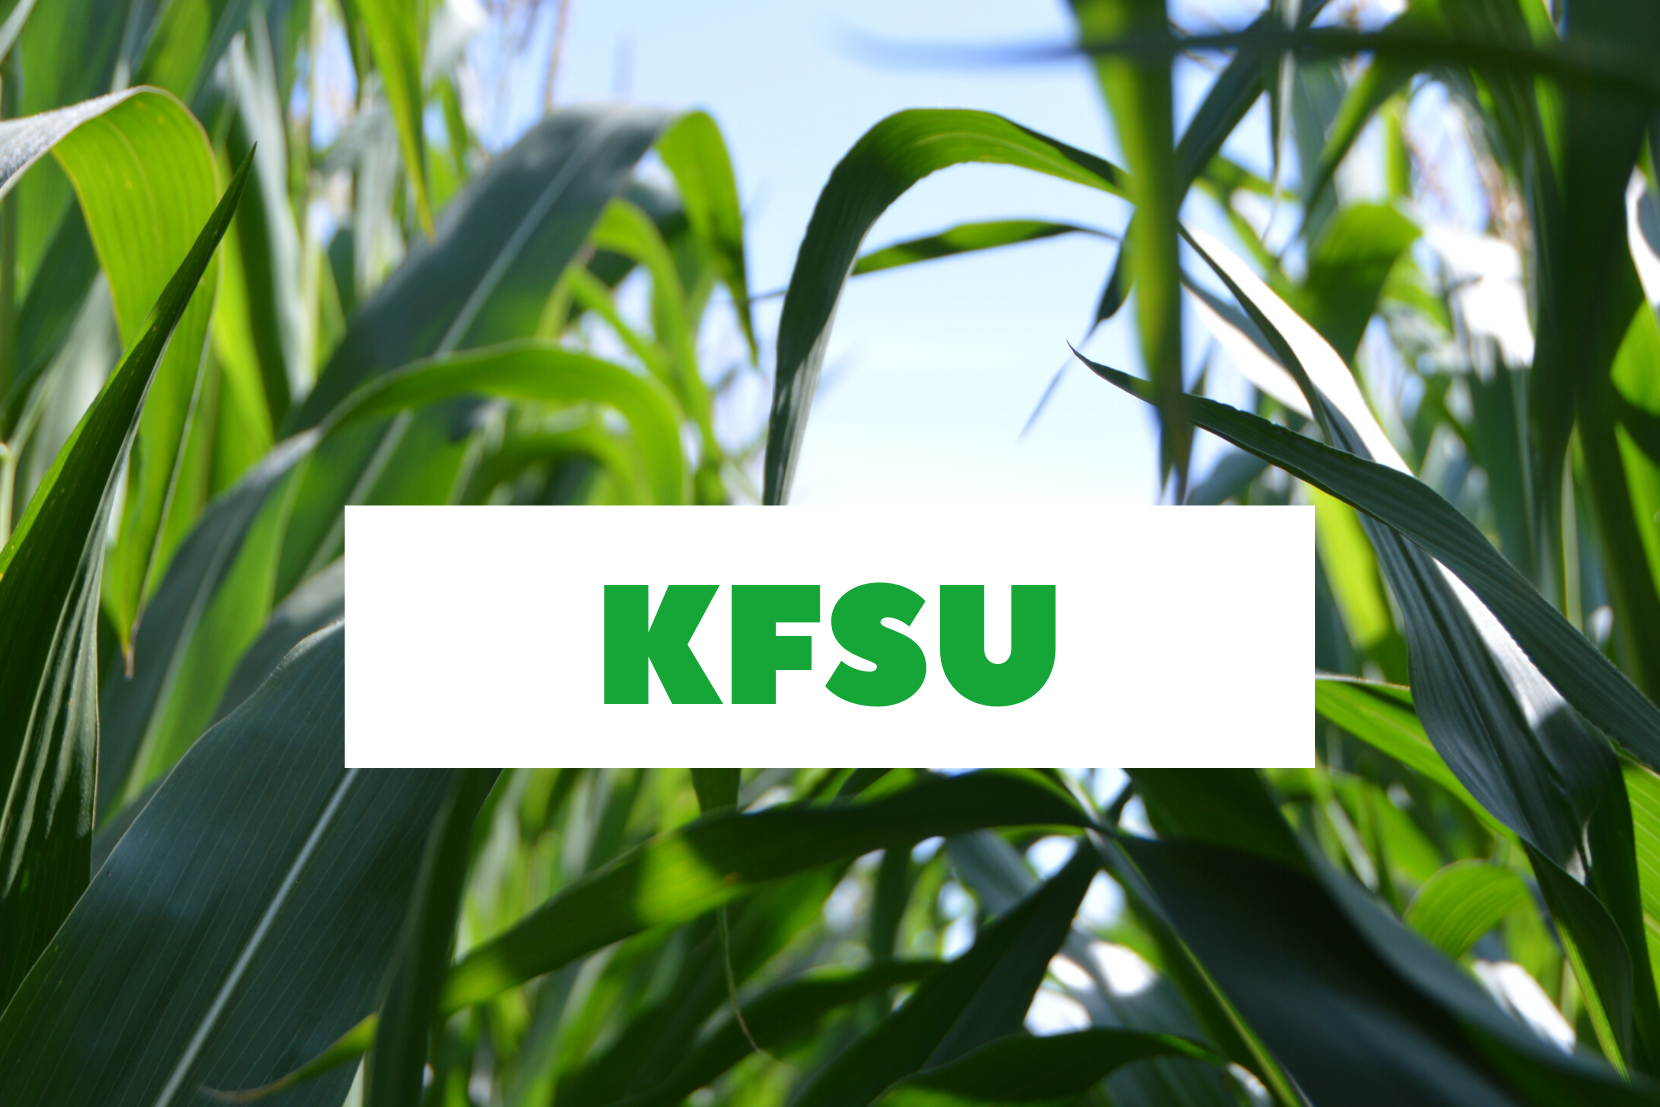 KFSU Background